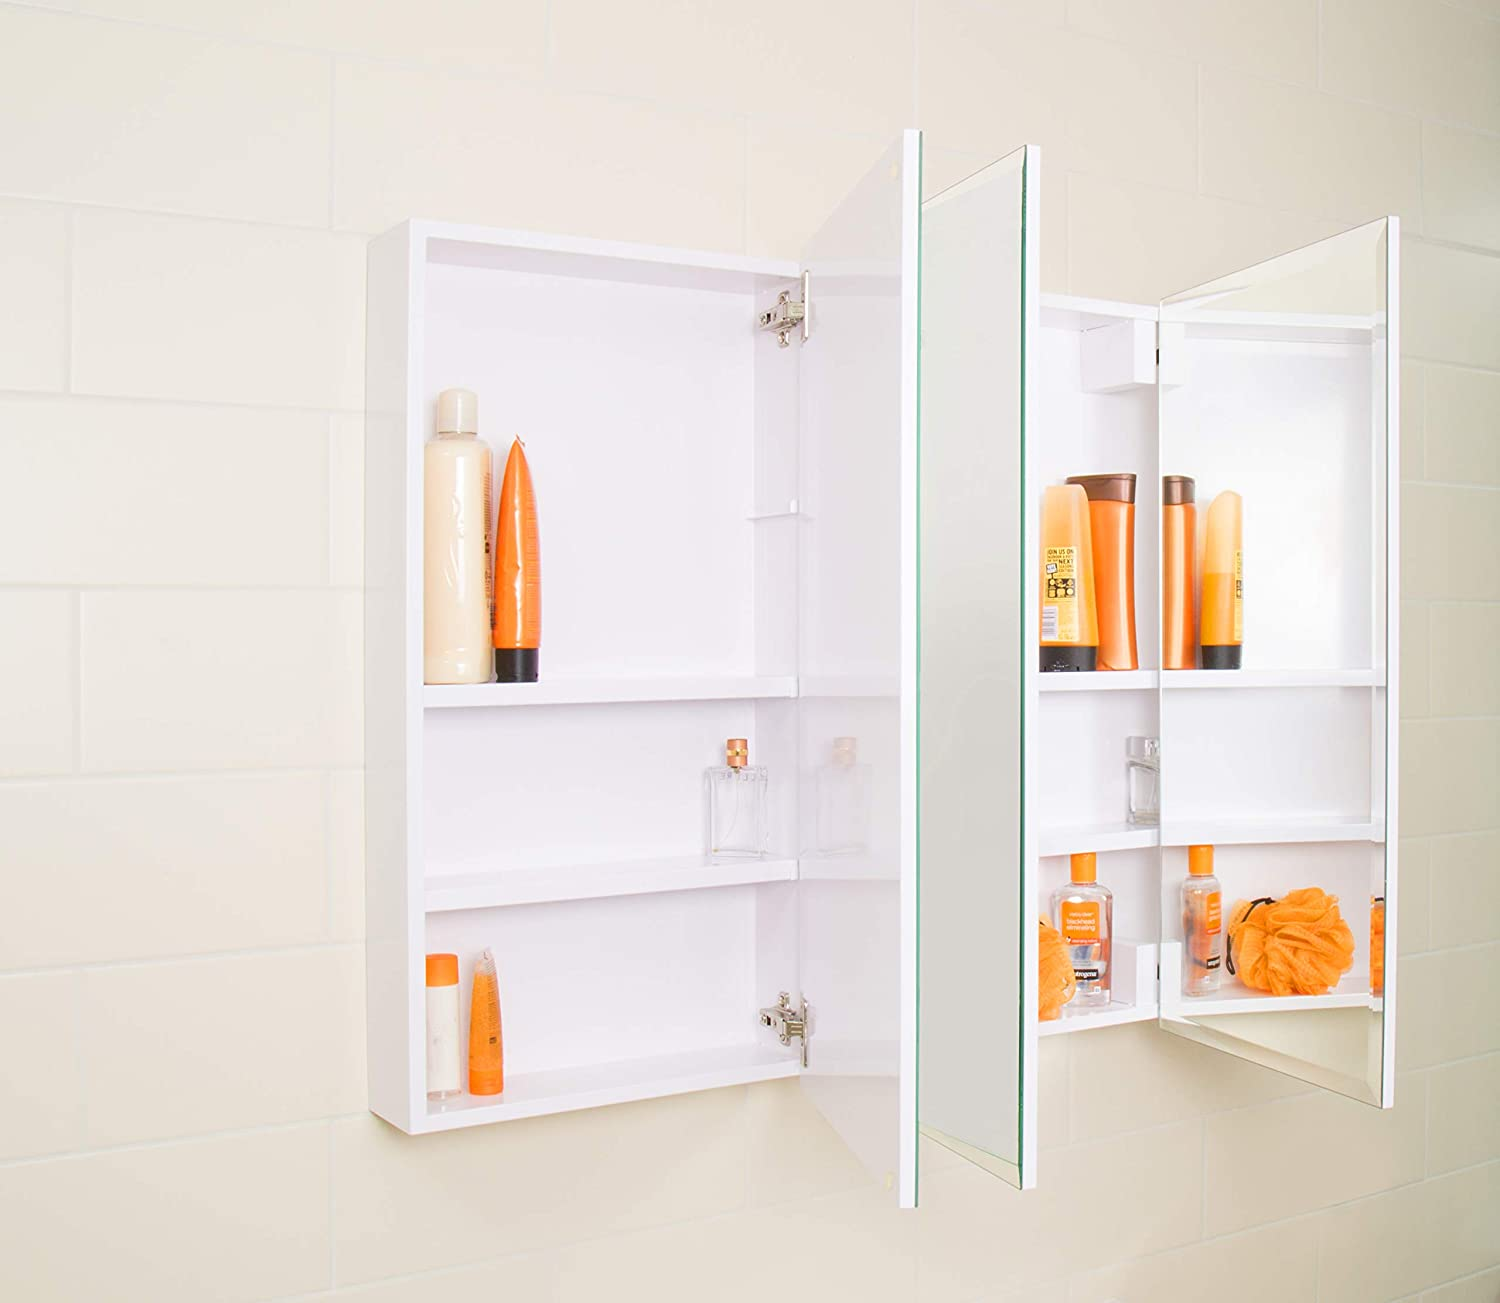 Croydex Heacham 30-Inch x 30-Inch Triple Door Tri-View Cabinet with Hang N Lock Fitting System